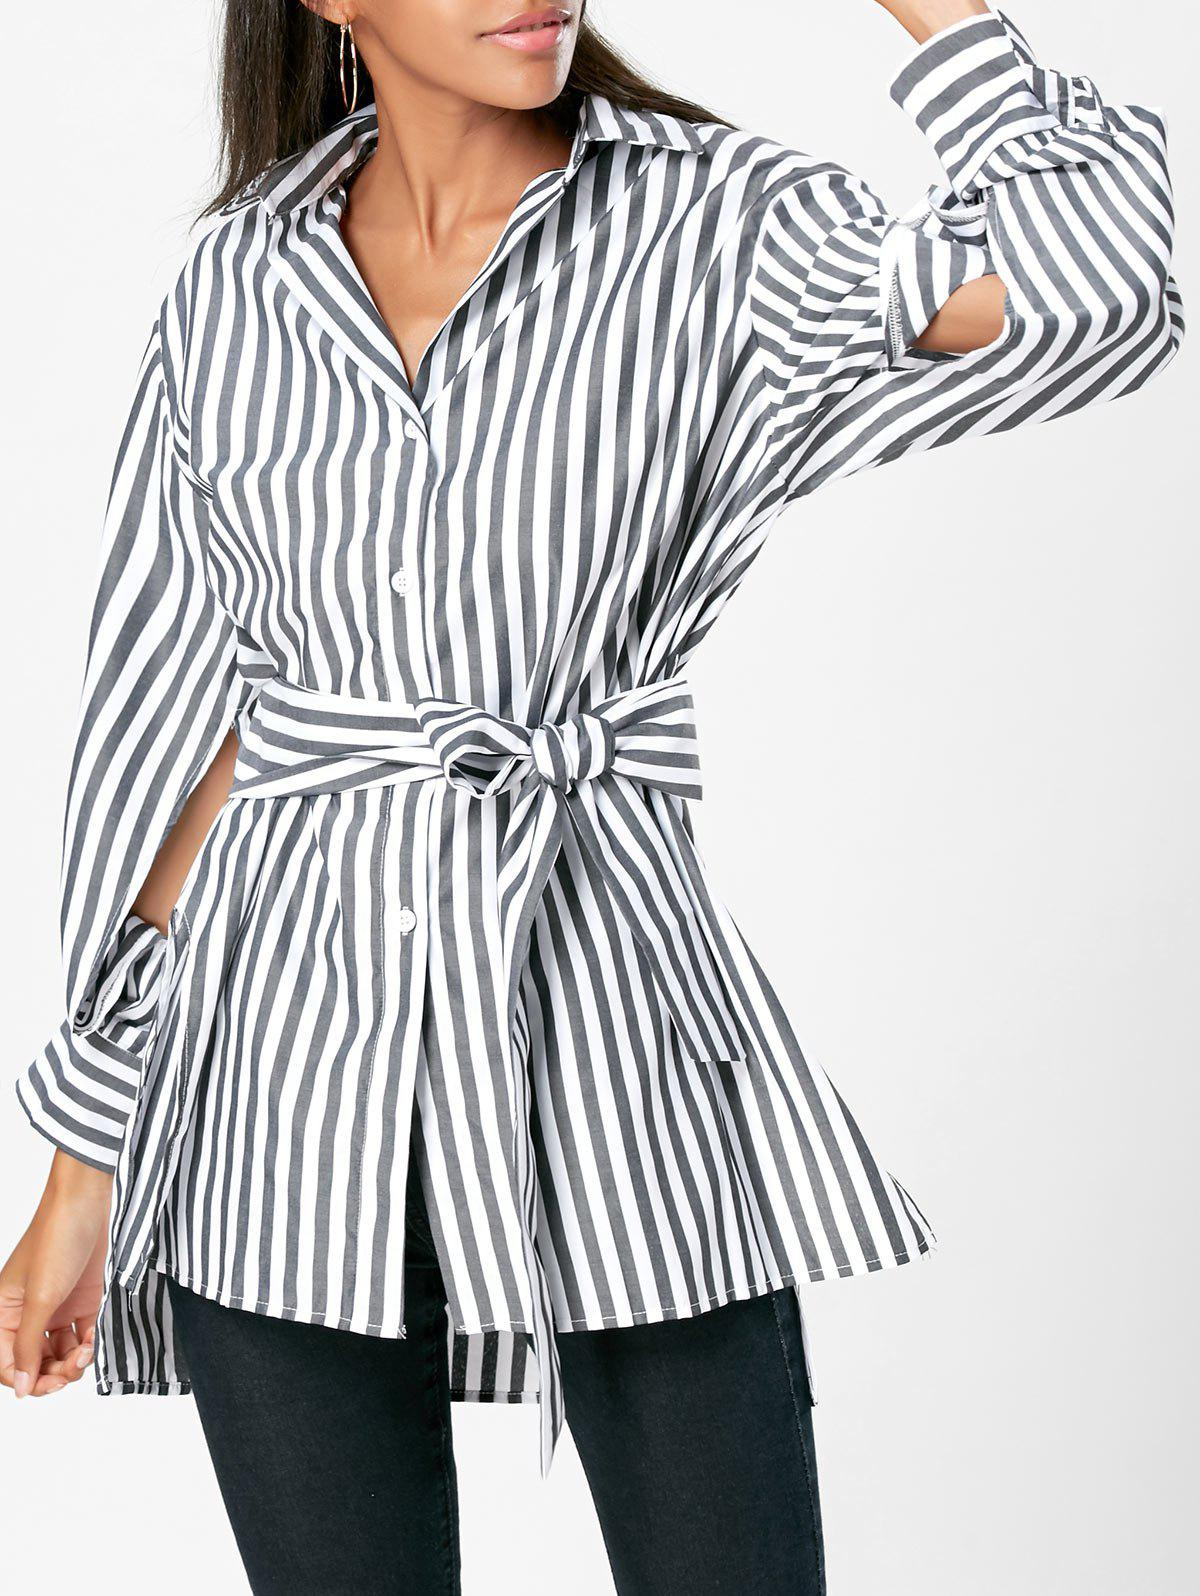 High Low Slit Striped Belted ShirtWOMEN<br><br>Size: M; Color: STRIPE; Occasion: Casual; Style: Fashion; Material: Cotton,Polyester; Shirt Length: Long; Sleeve Length: Full; Collar: Shirt Collar; Pattern Type: Striped; Season: Fall,Spring; Weight: 0.2900kg; Package Contents: 1 x Shirt  1 x Belt;